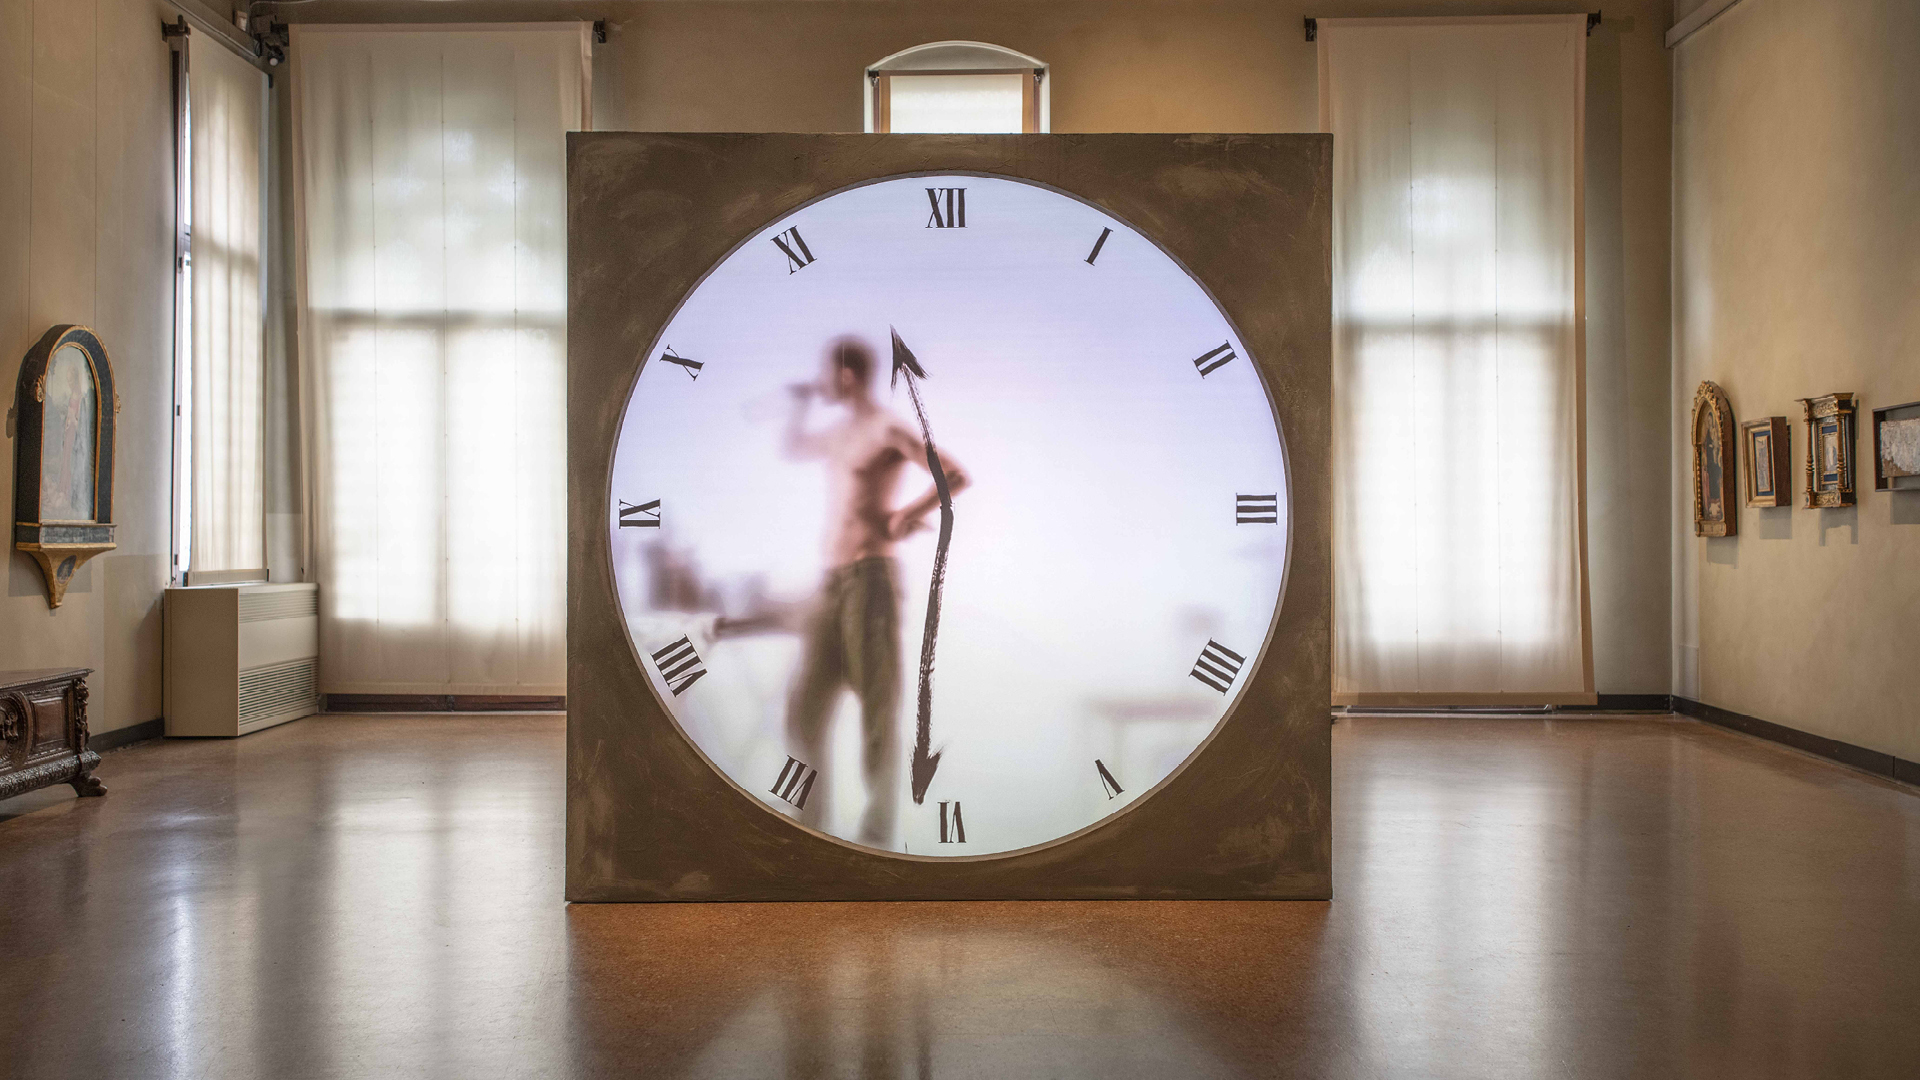 Maarten Baas; Real Time XL The Artist by Maarten Baas; 2018; Brass, concrete, bronze, digital components; H250 L250 W240 CM / H98.4 L98.4 W94.5 in; Unique | Dysfunctional | STIR